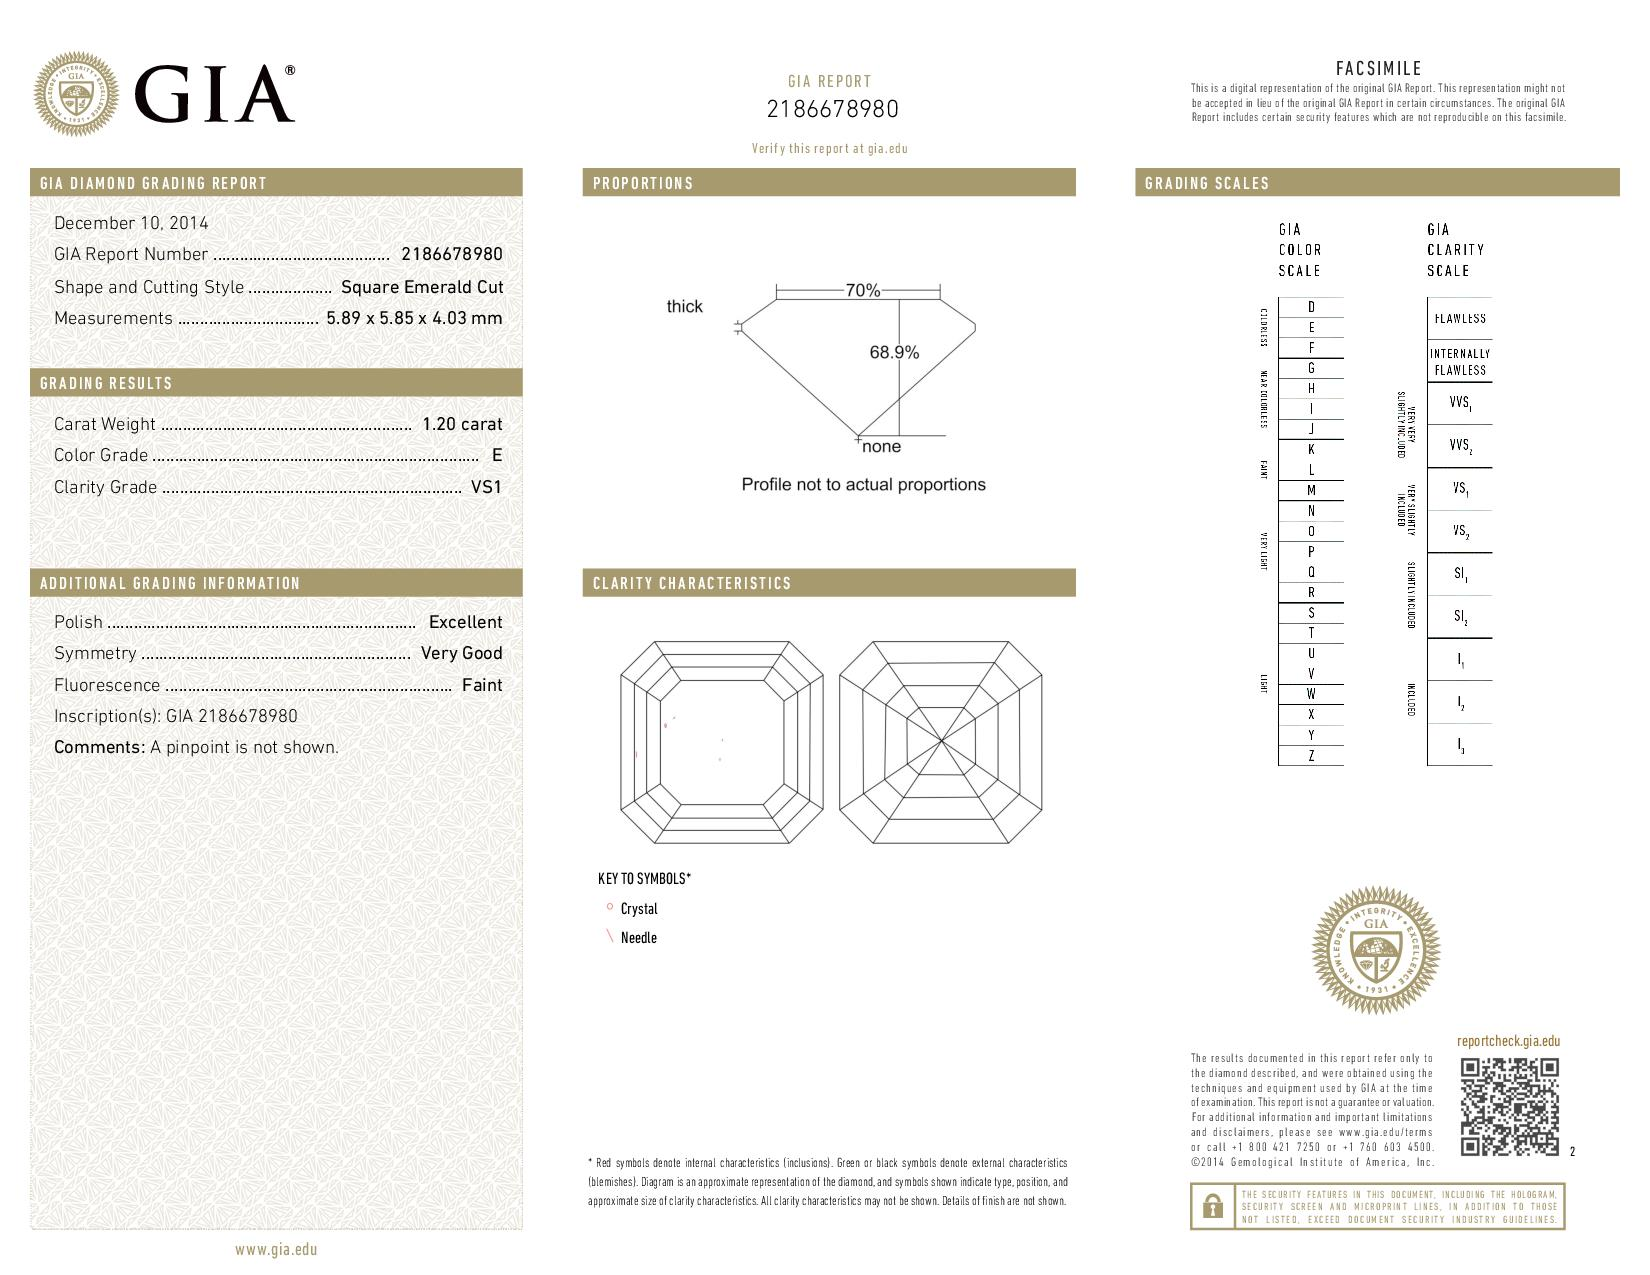 This is a 1.20 carat asscher shape, E color, VS1 clarity natural diamond accompanied by a GIA grading report.